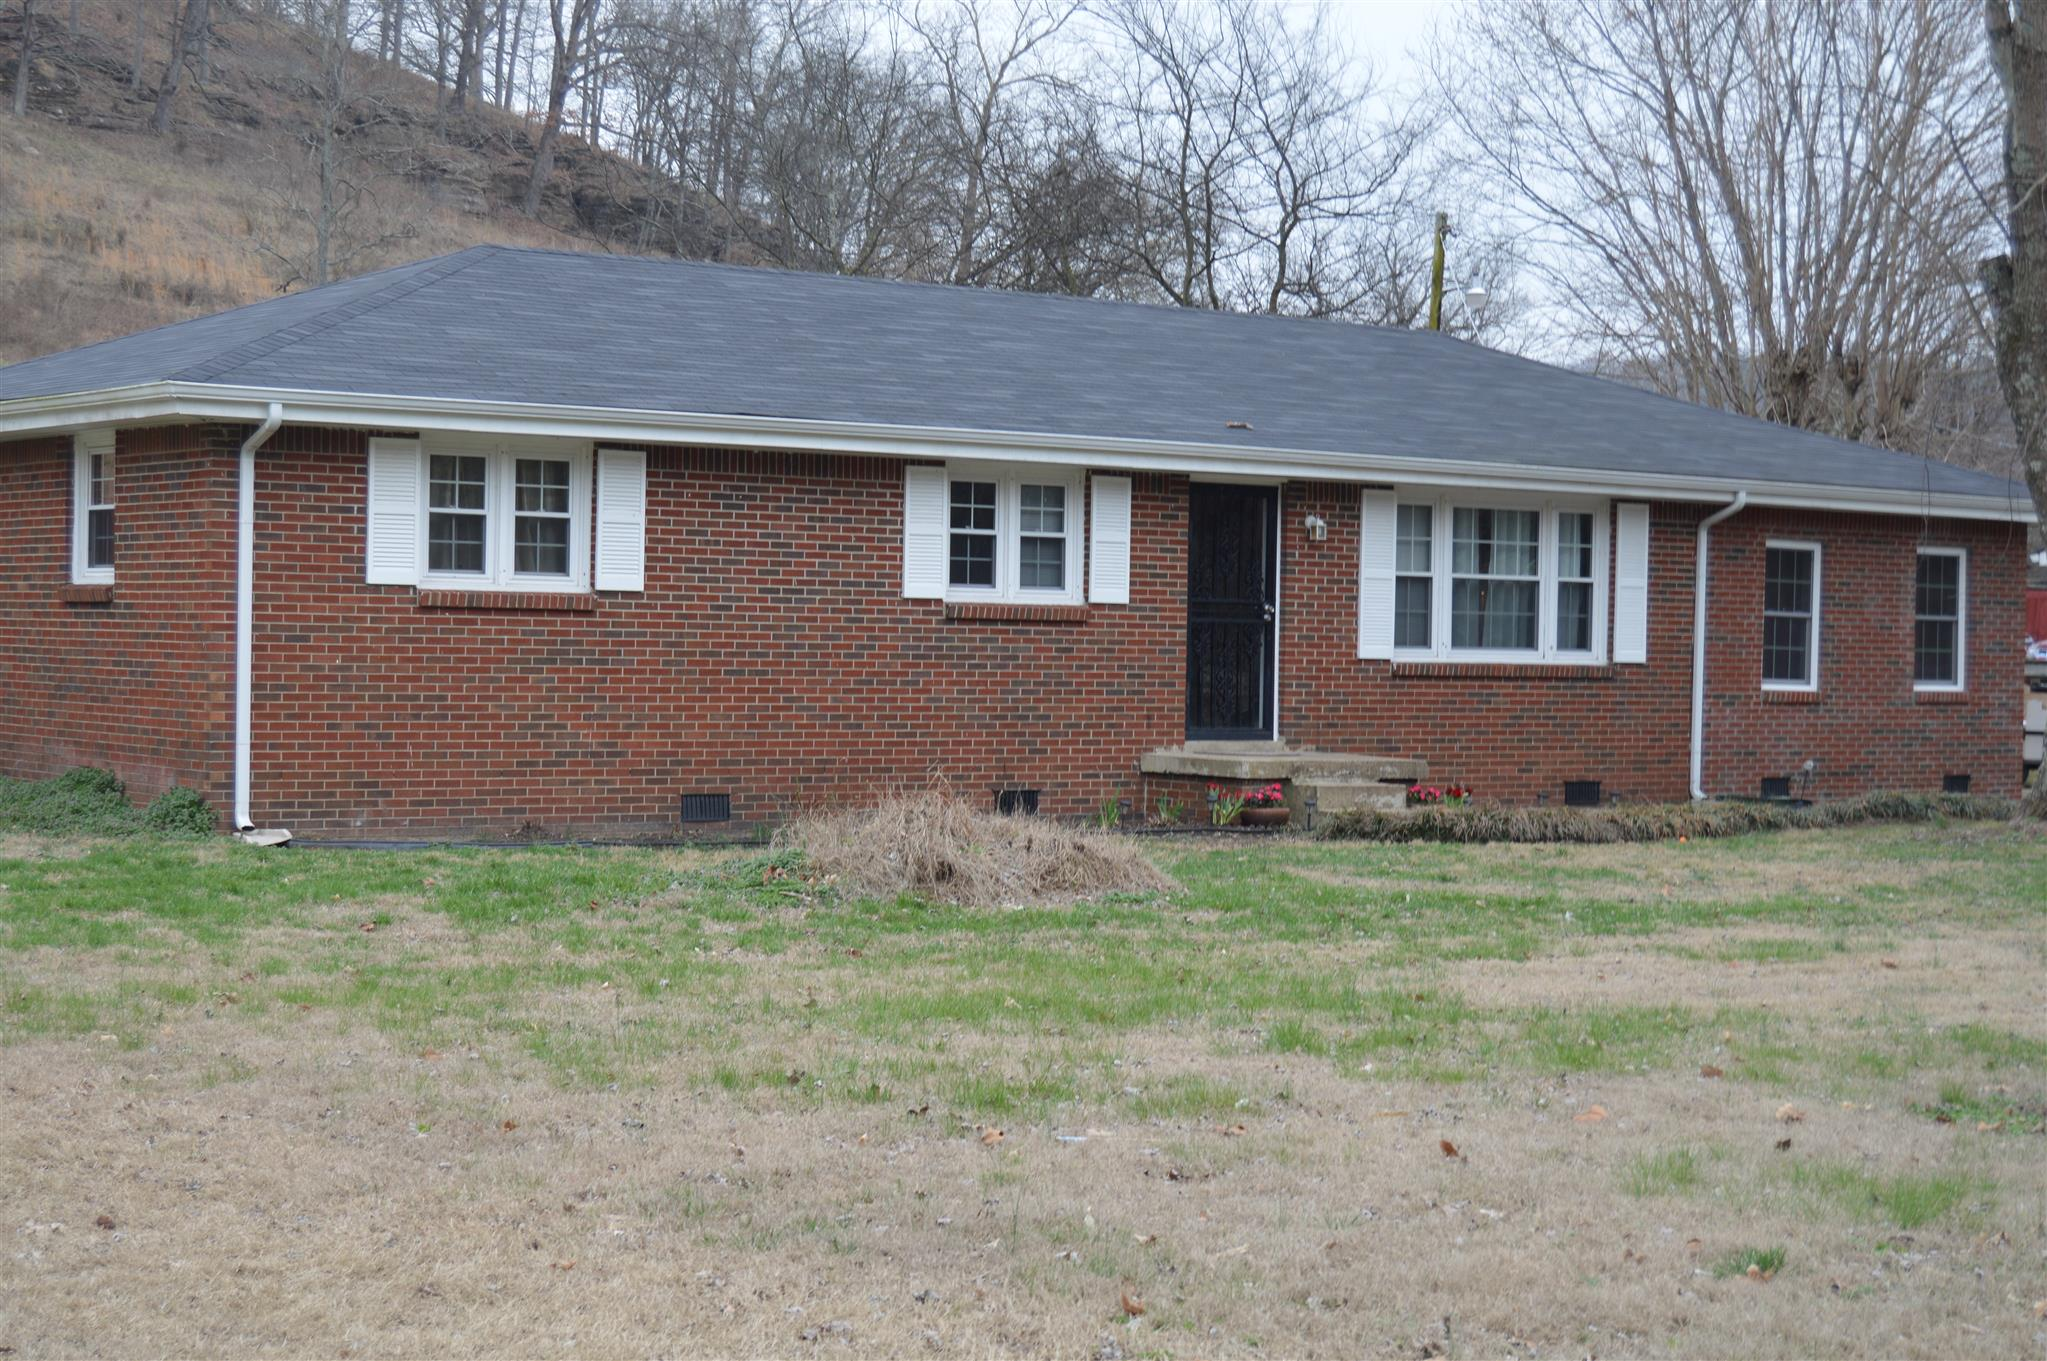 Photo of 1120 Slaters Creek Rd  Goodlettsville  TN